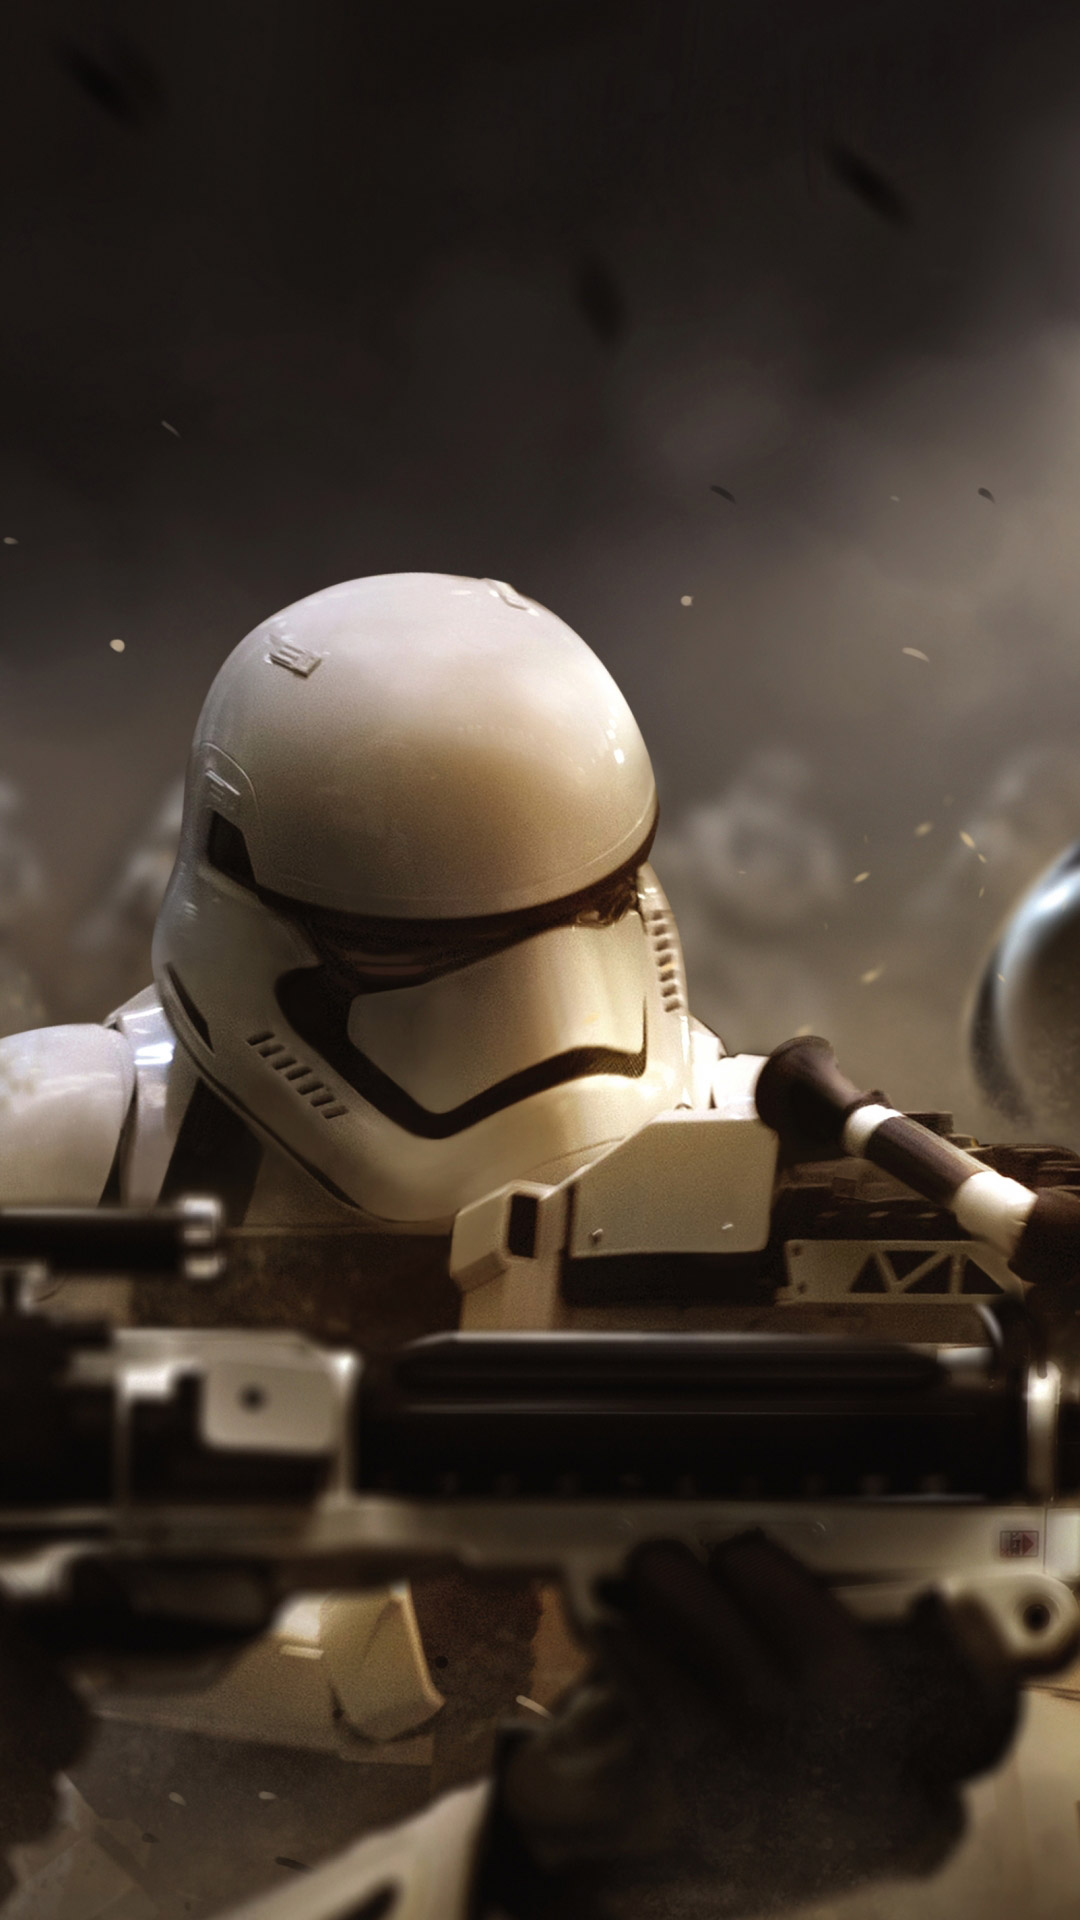 Star-Wars-The-Force-Awakens-Wallpaper-Stormtrooper-Offensive